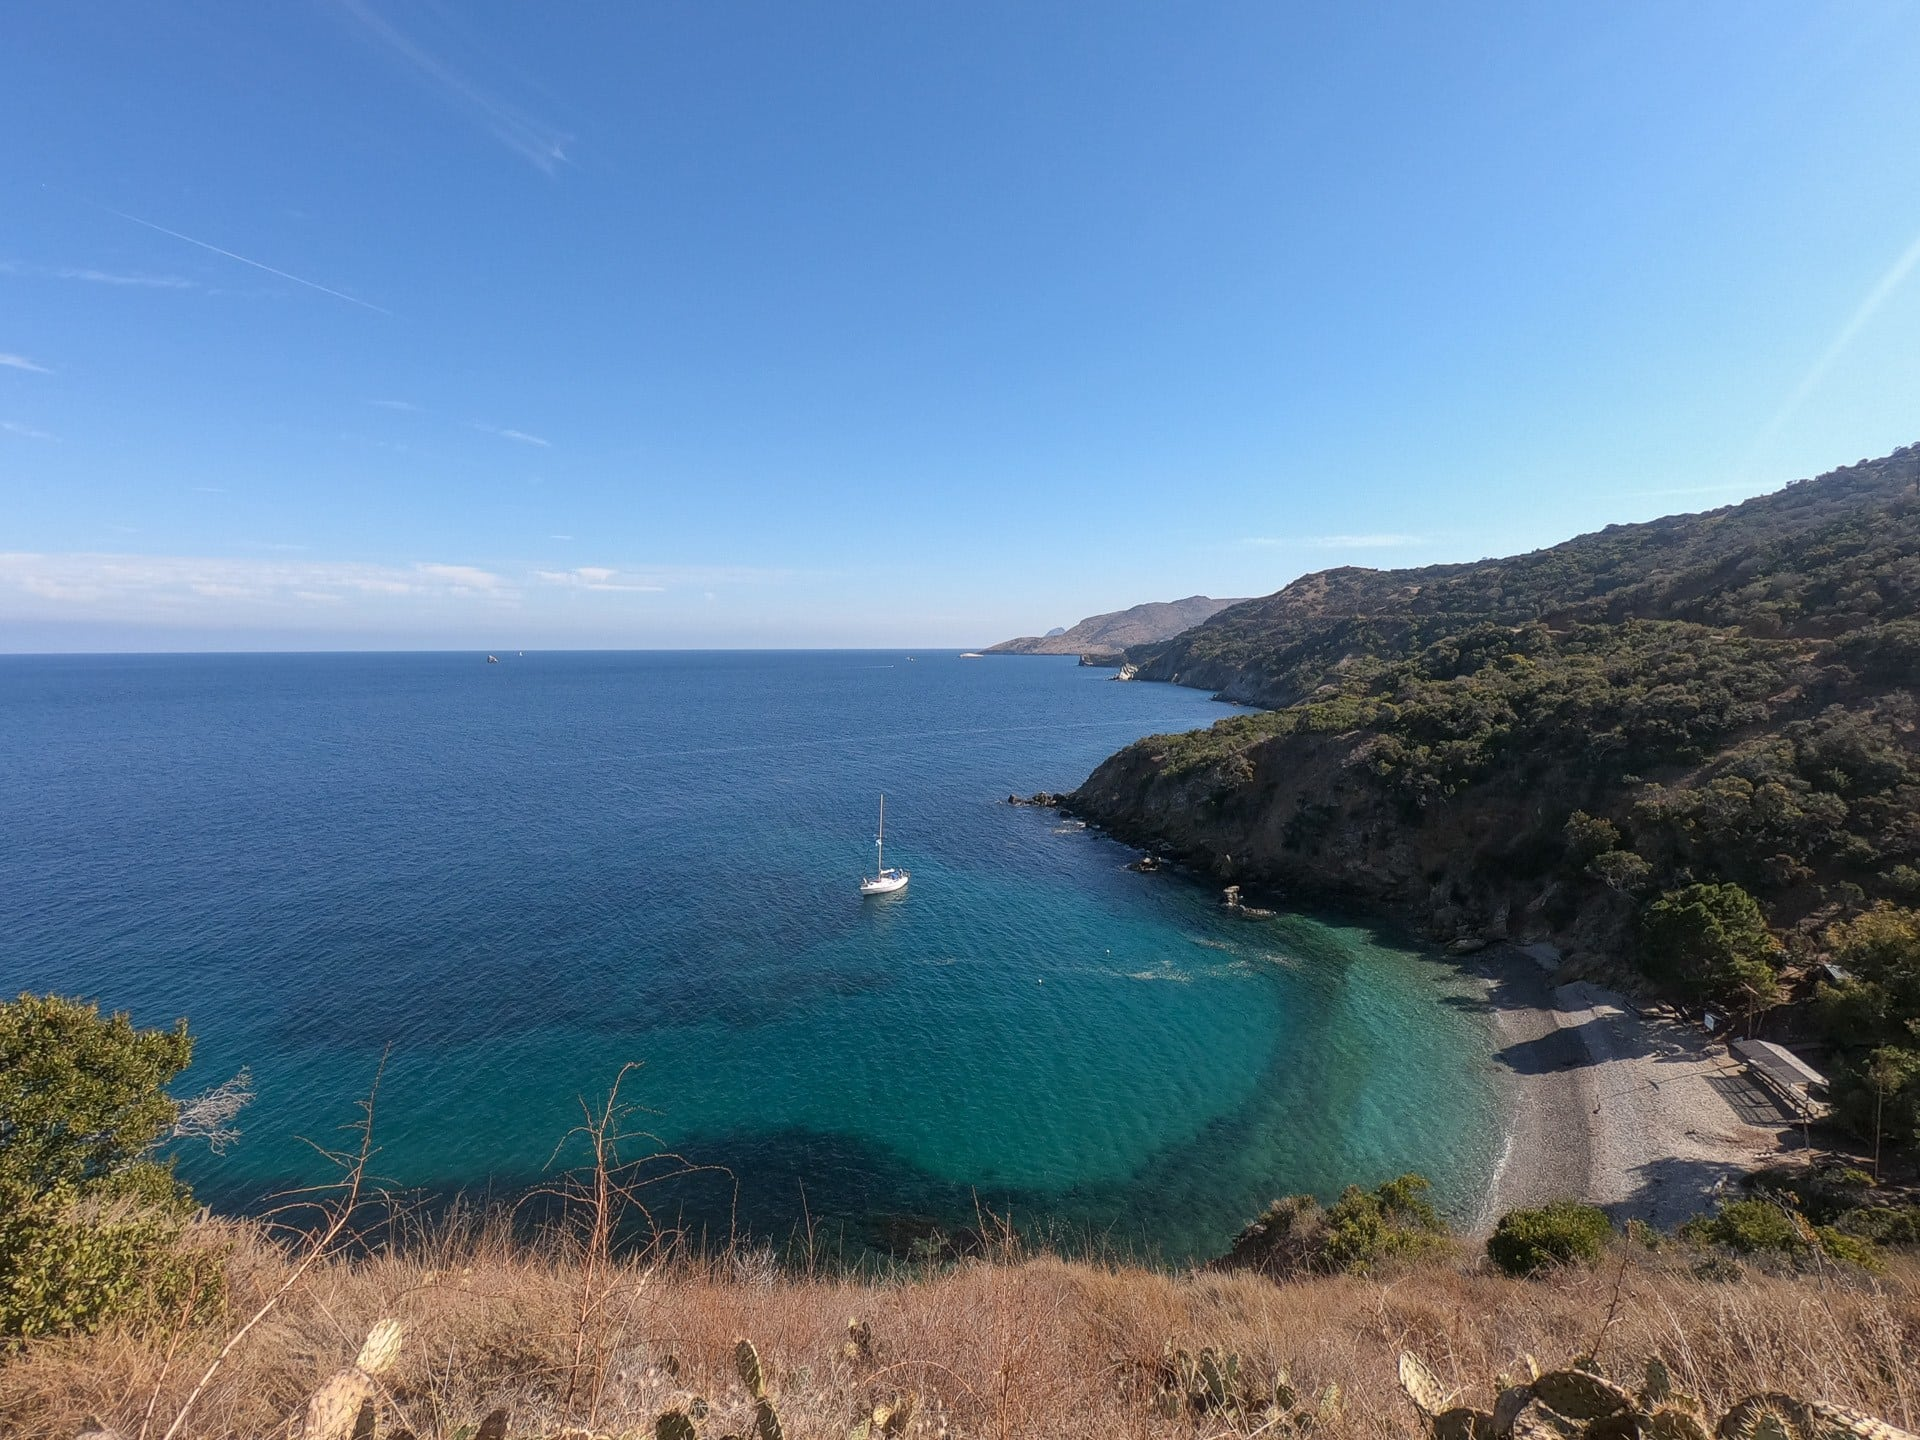 Plan a backpacking trip on the Trans-Catalina Trail on Catalina Island with this trail guide with tips on the best campsites, water availability, gear & more